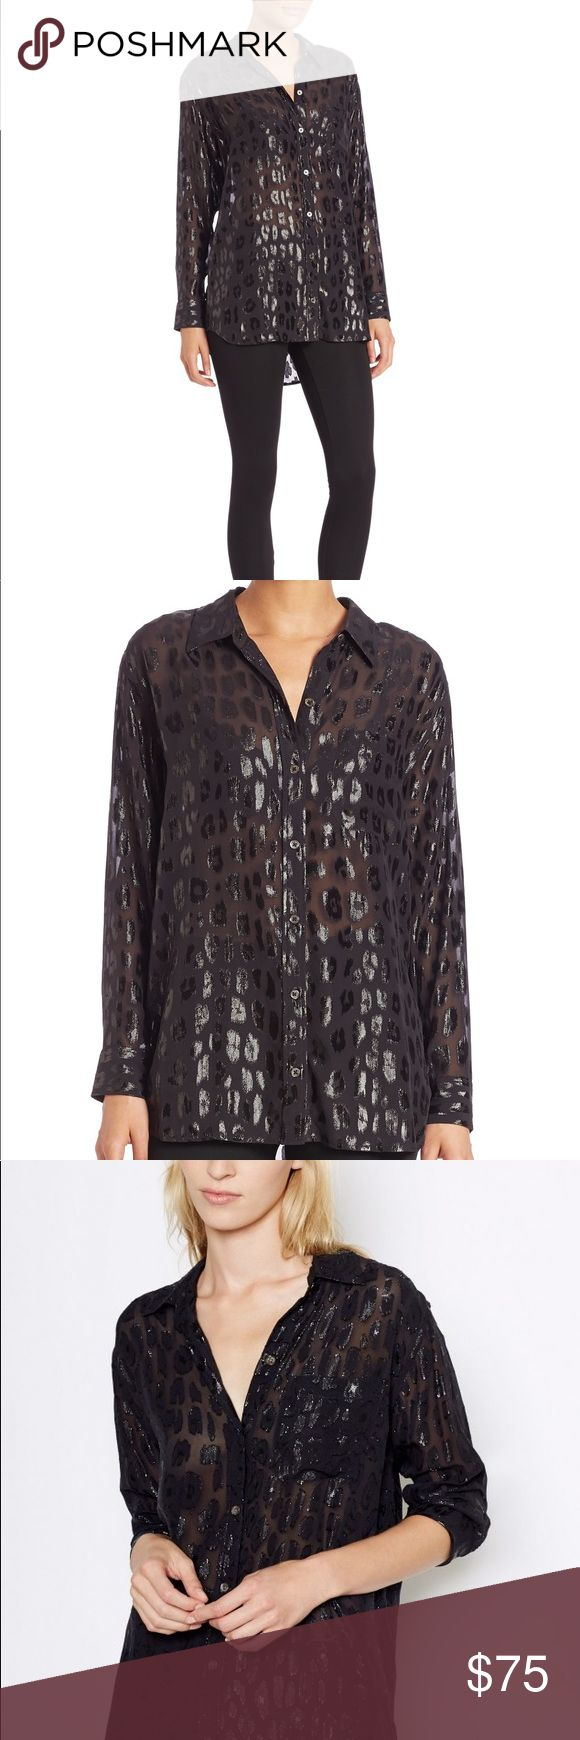 """Equipment Metallic Blouse Equipment Long Sleeve Blouse Textured Animal Print Sparkle Pattern Bust: 42"""" Shoulder: 17"""" Length: 29"""" Sleeve: 22"""" 77% Silk 23% Nylon Gently worn; great condition! Equipment Tops Blouses"""